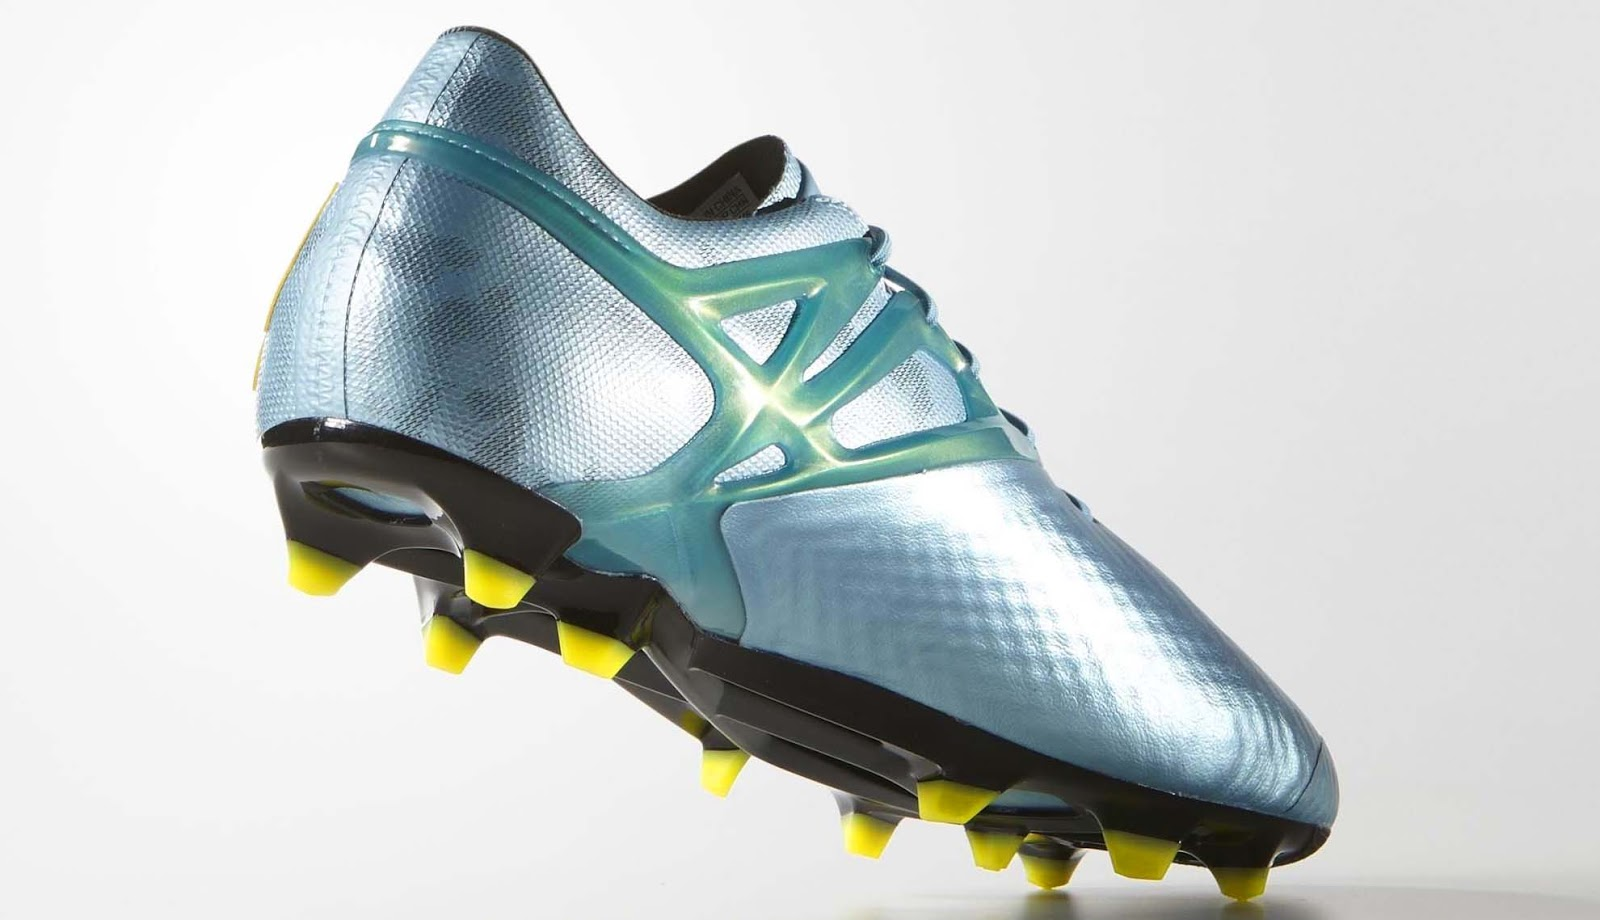 Adidas Messi 15.1 2015-2016 Boots Released